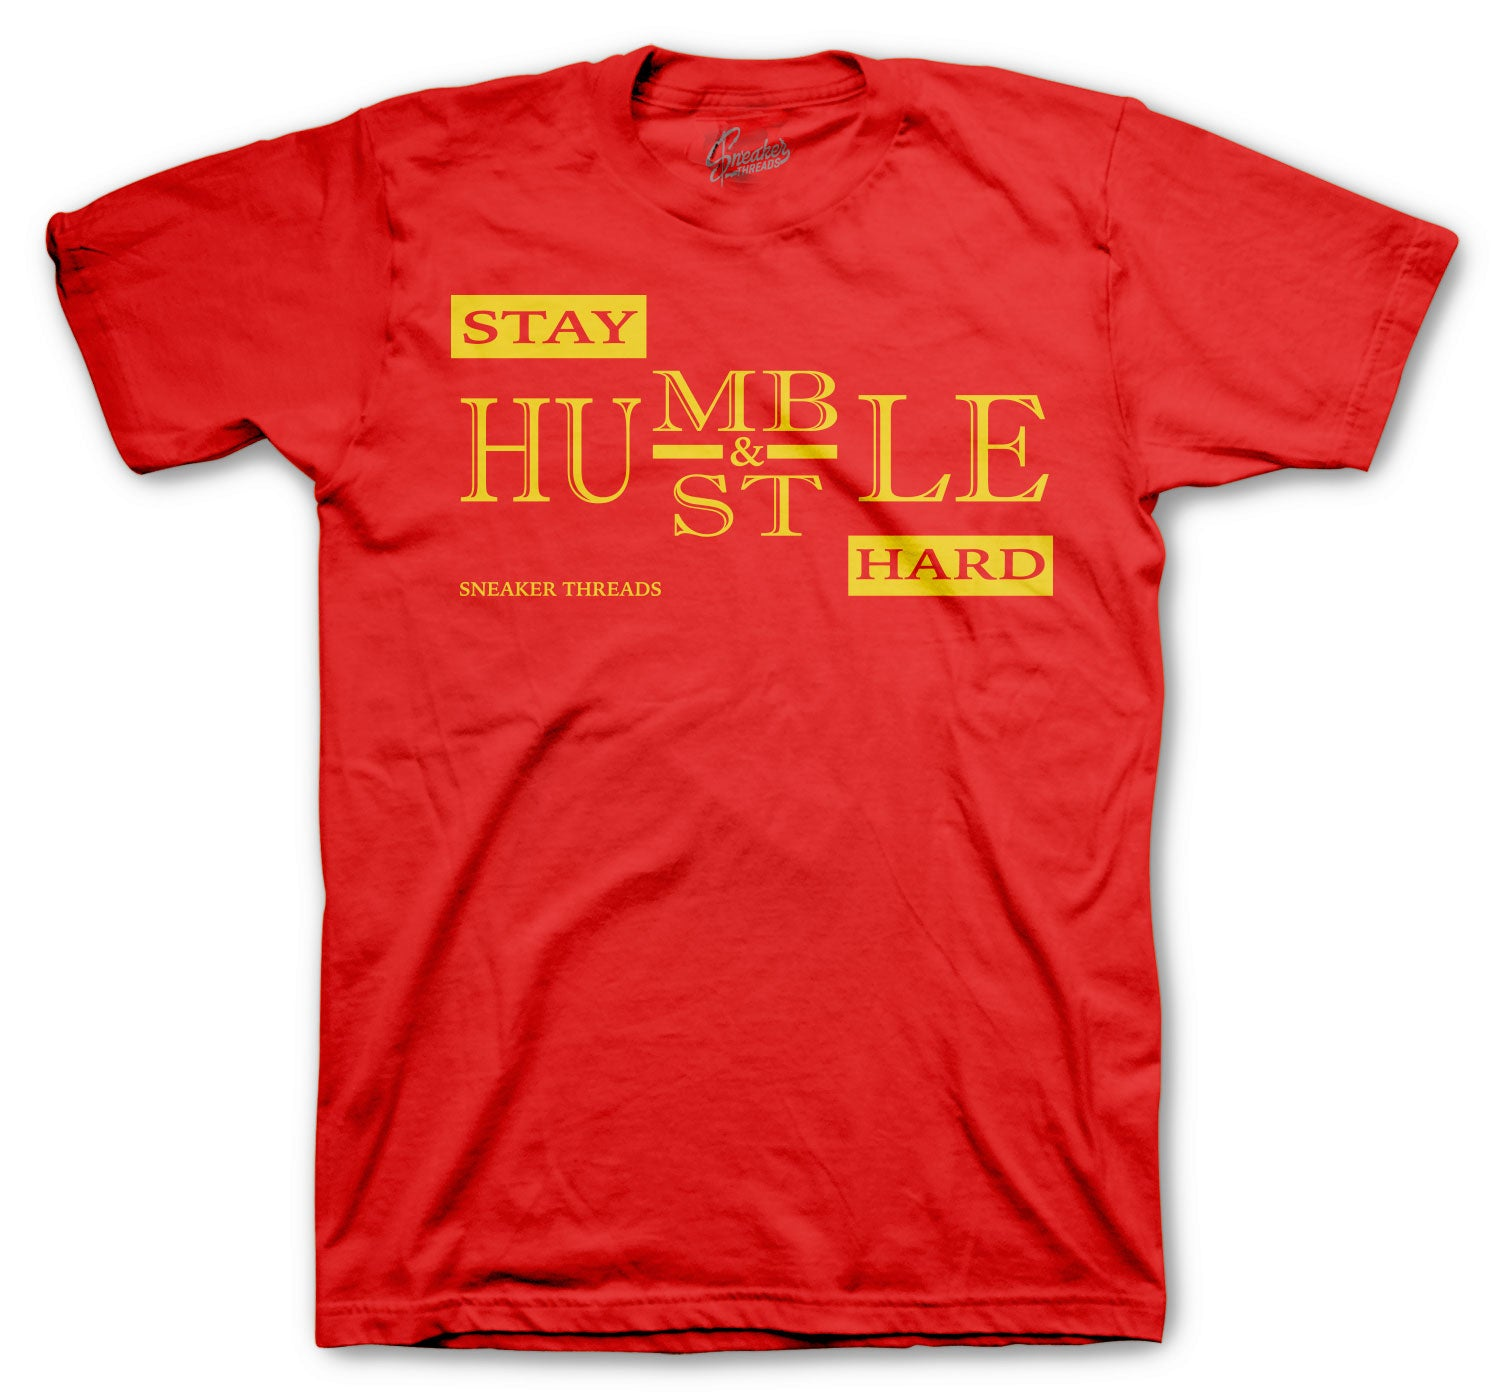 Jordan 5 What The Stay Humble Shirt